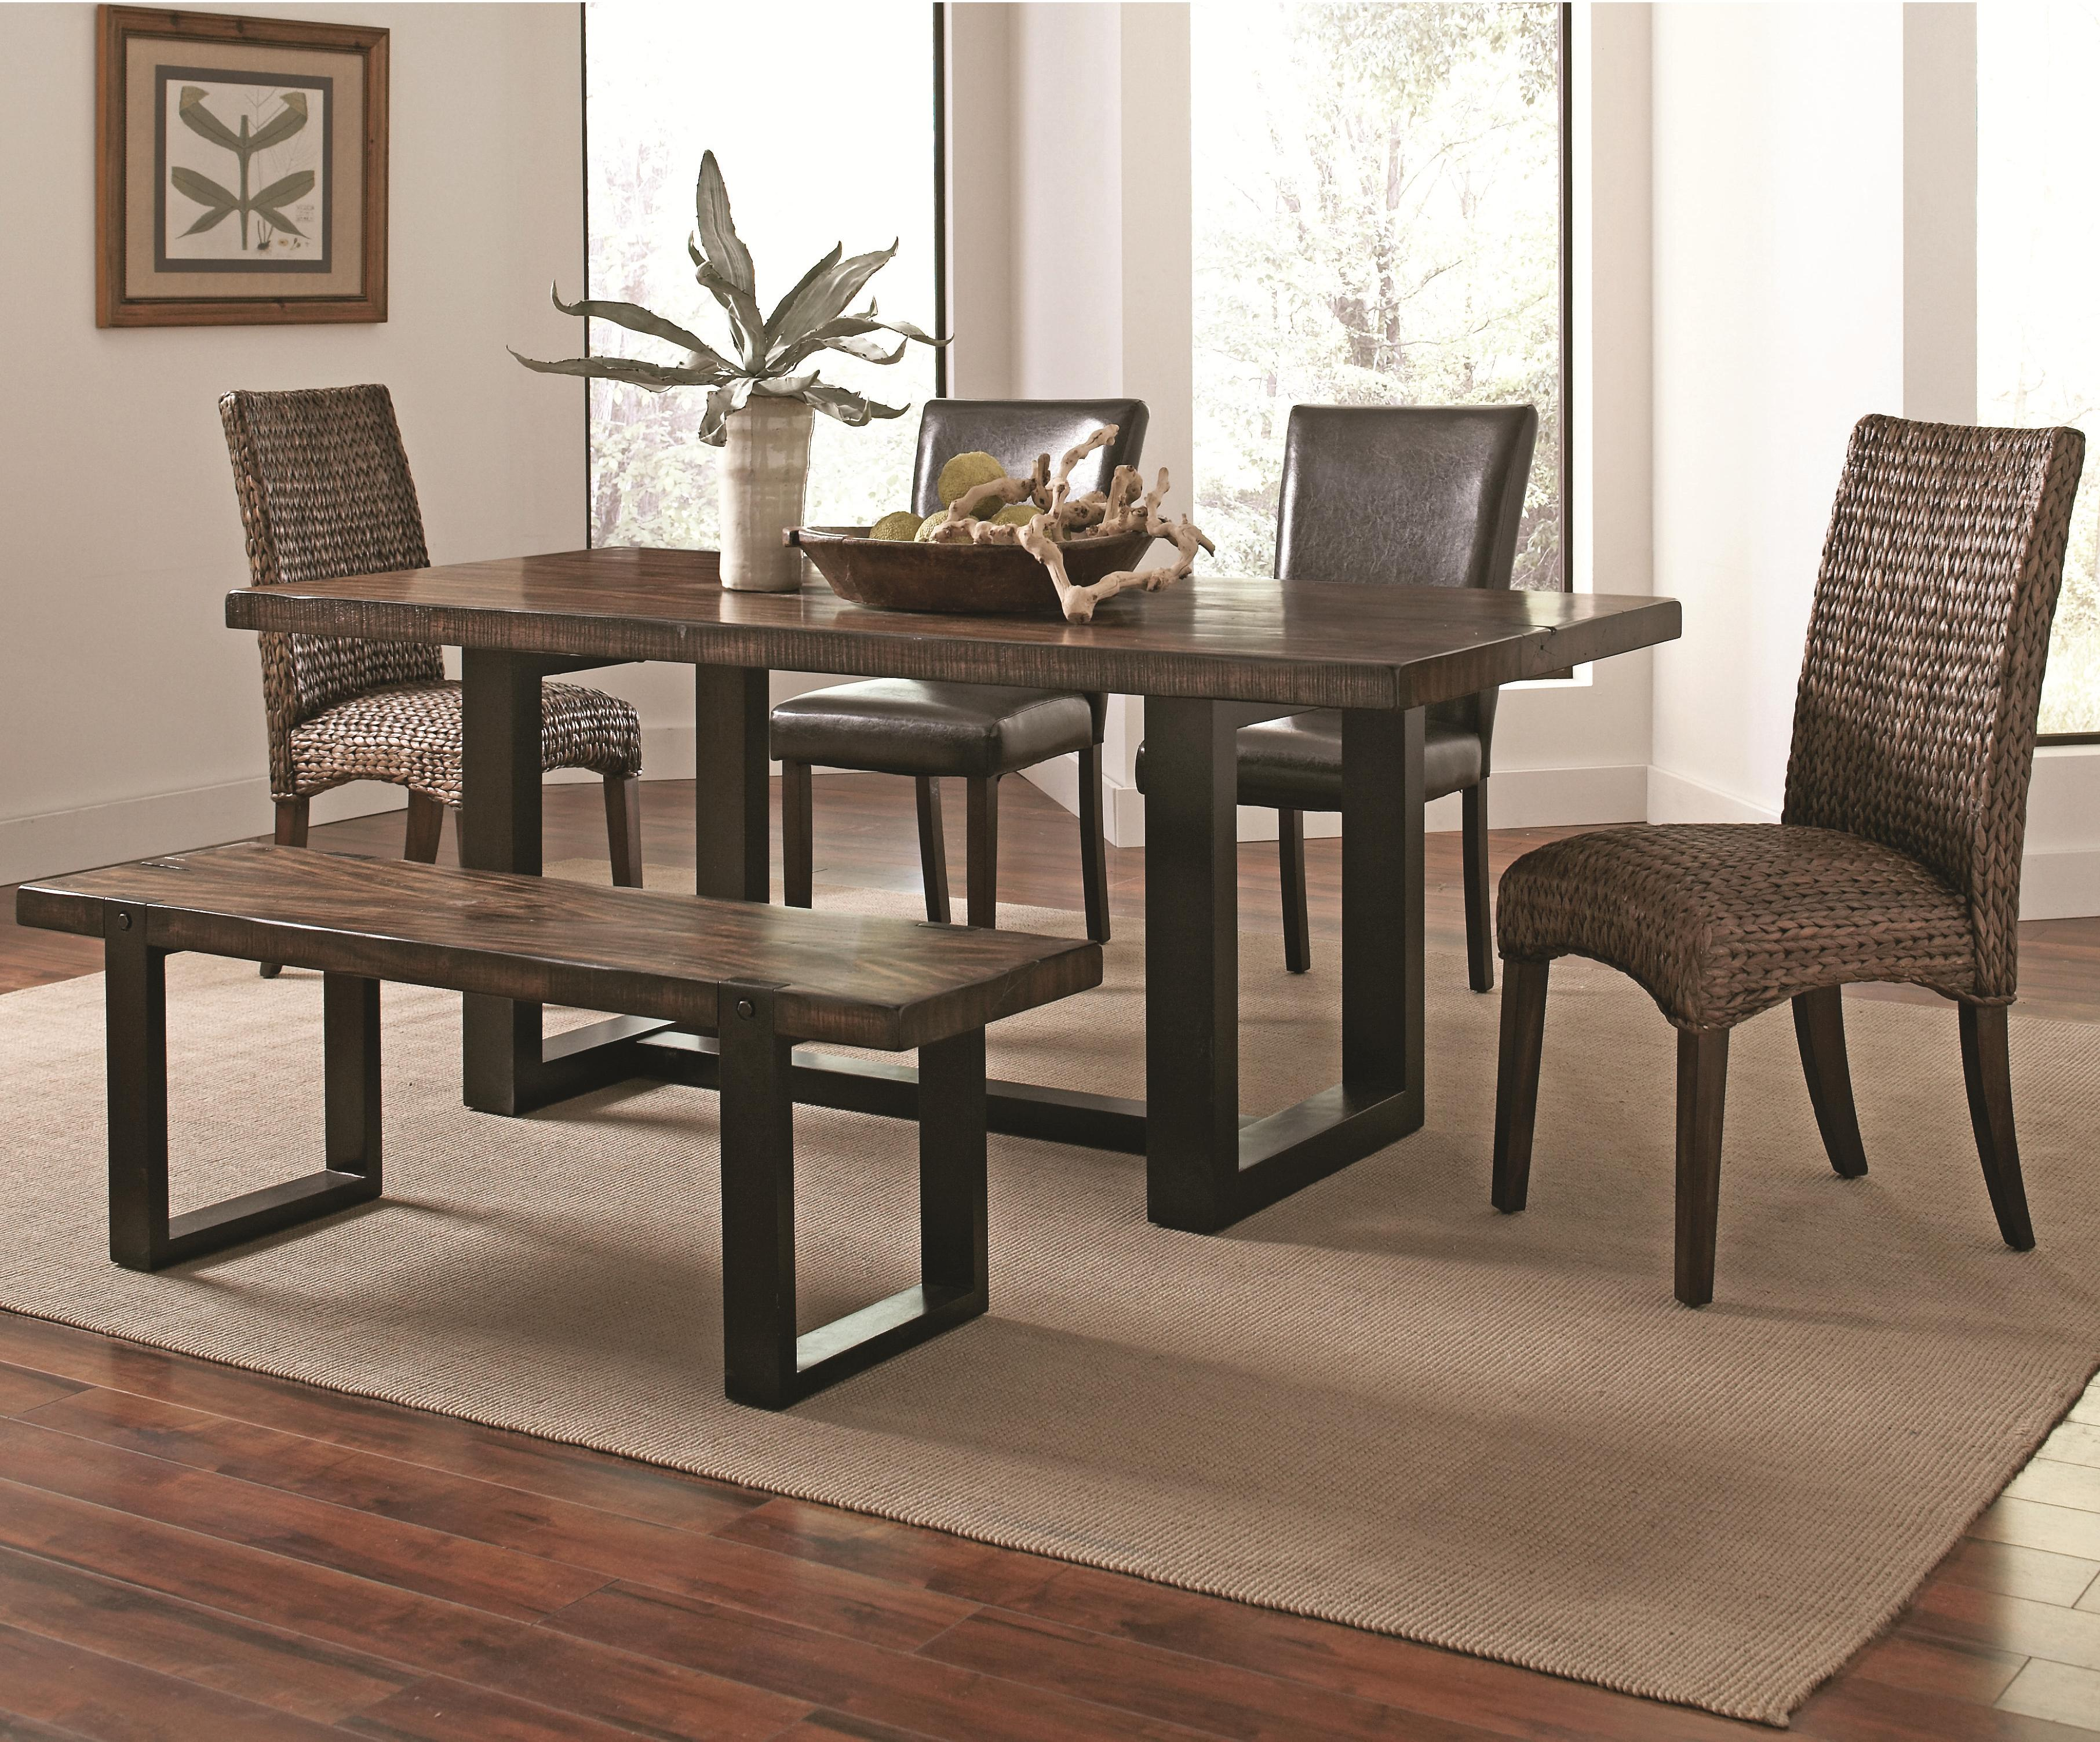 Westbrook Dining Casual Rustic 6 Piece MixandMatch